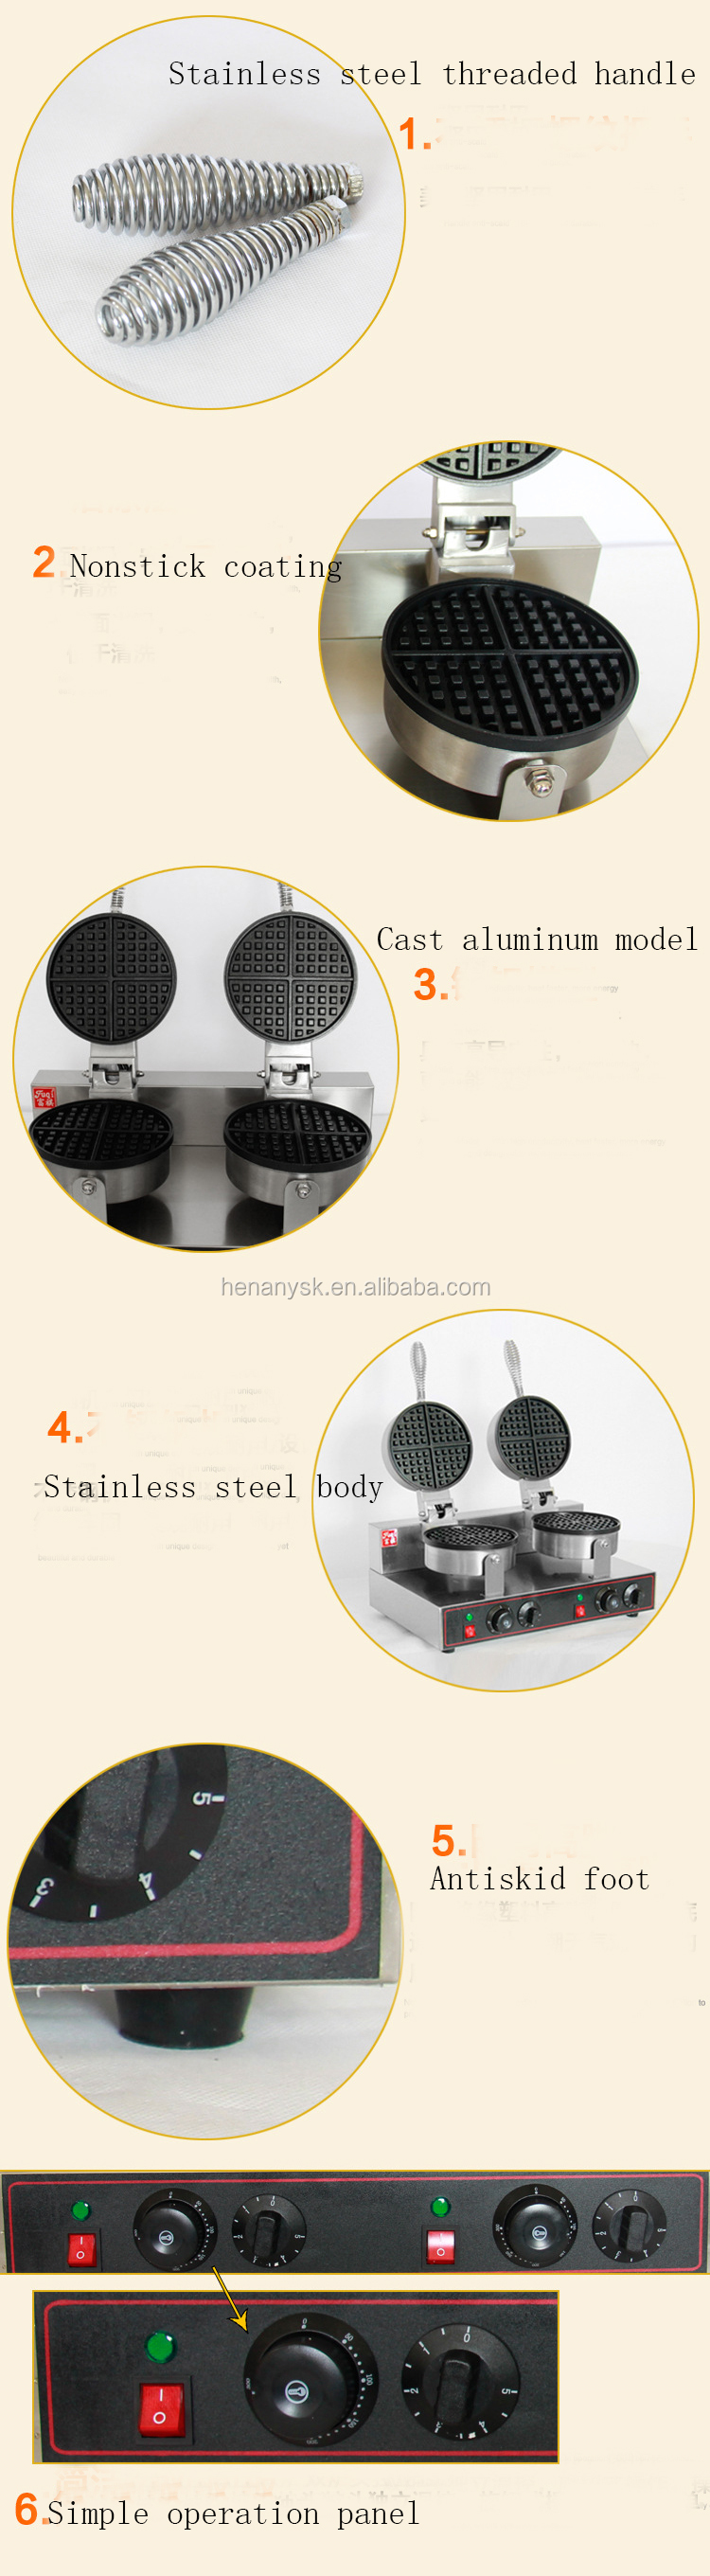 Waffle Iron 2 Kitchen Waffle Baking Mold Toaster Newly Timer Commercial Waffle Baker Maker Baking & Pastry Tools For Cakes